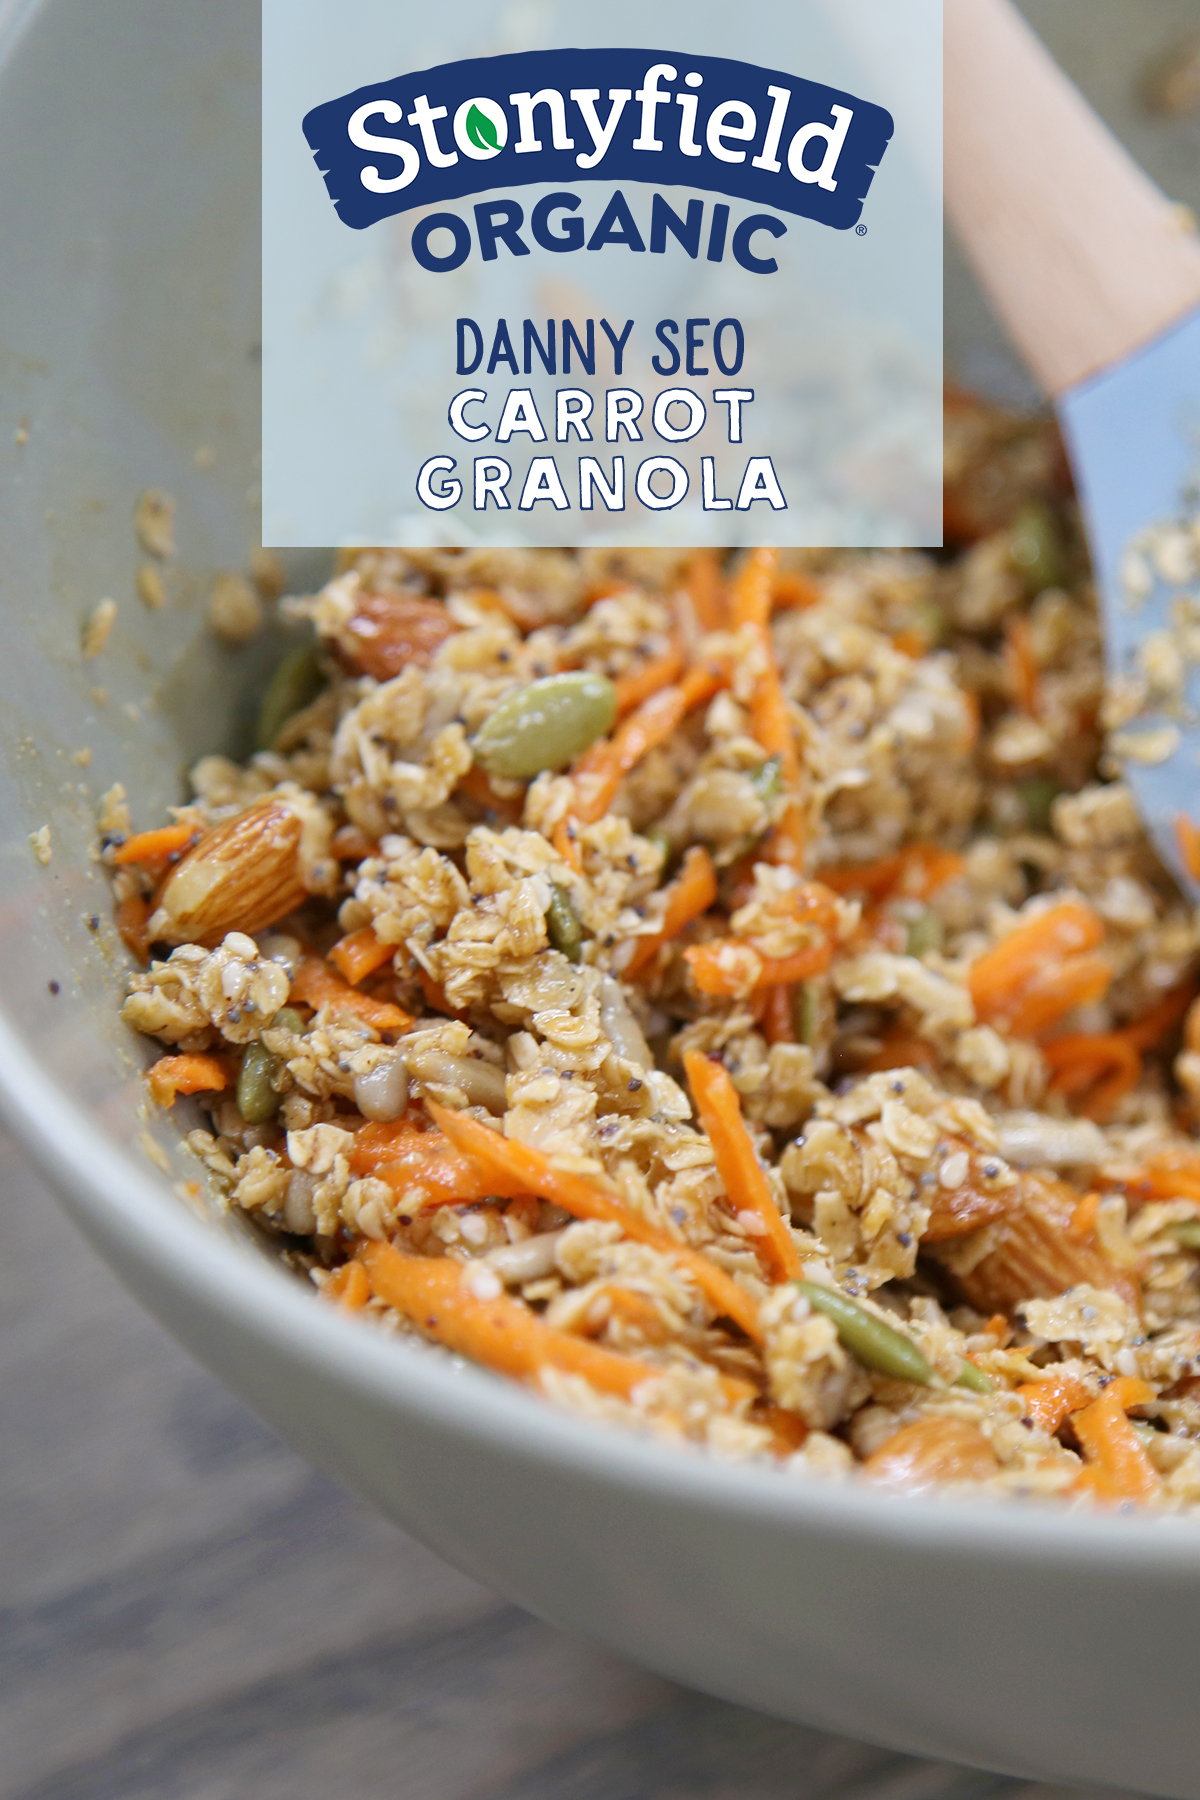 Carrot Granola By Danny Seo Stonyfield Recipes